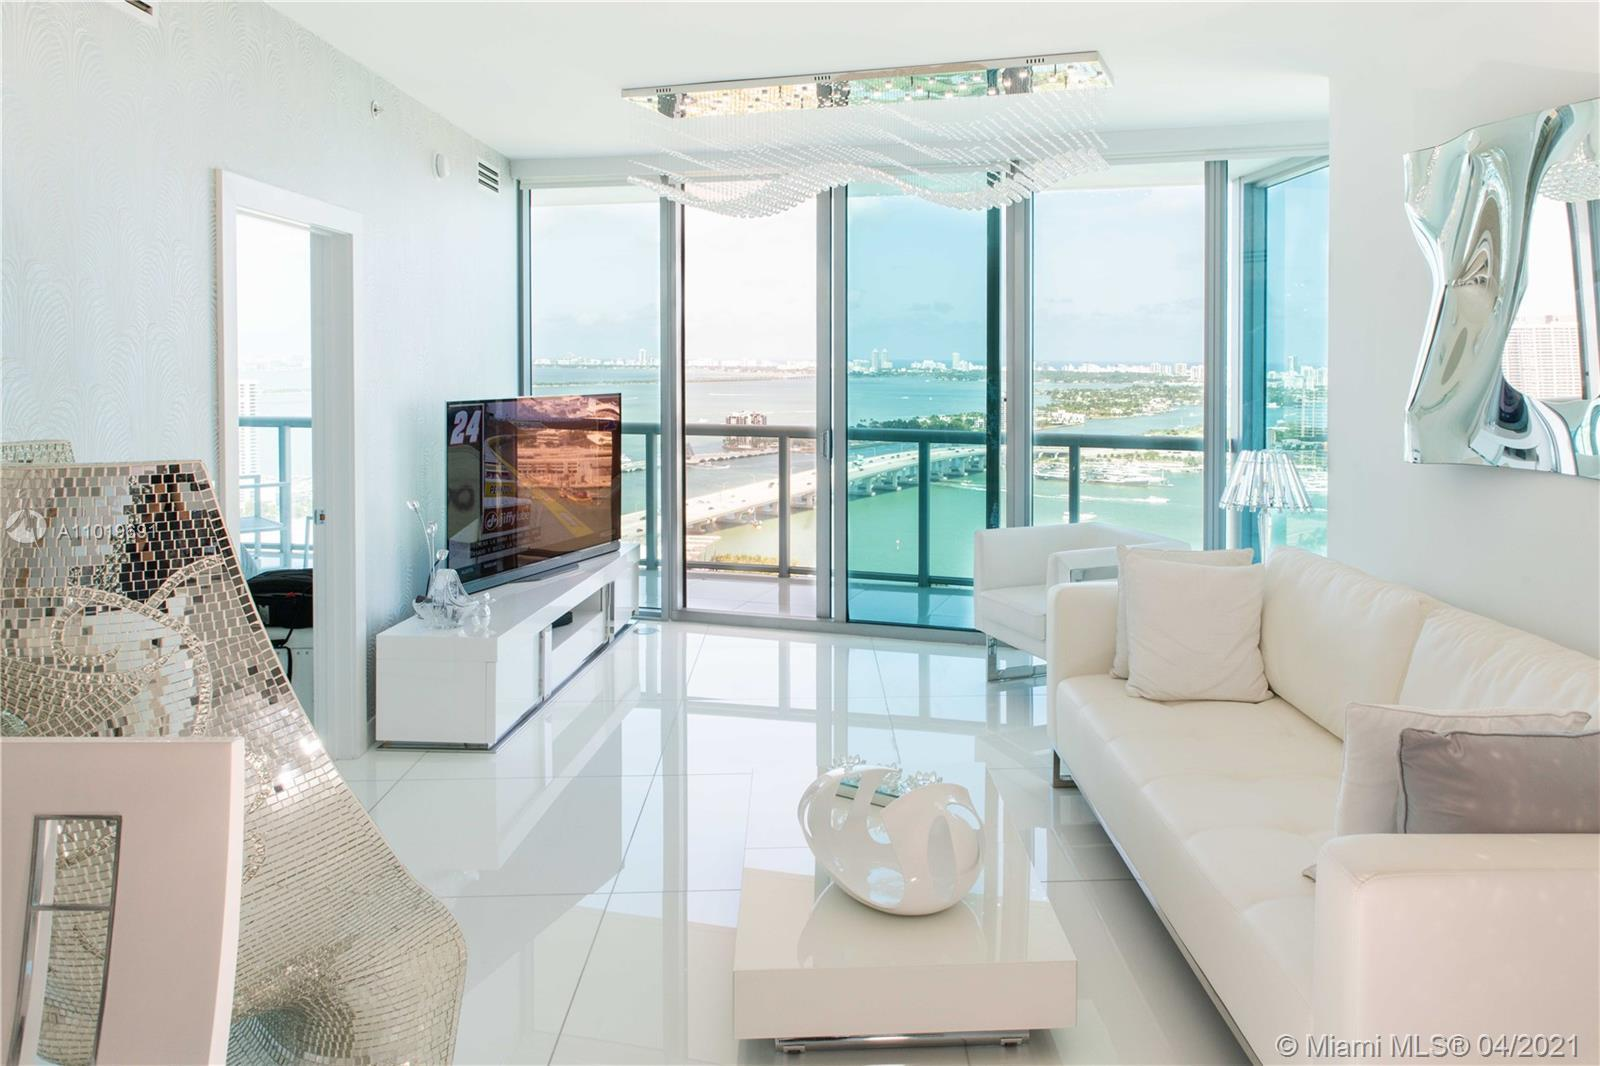 Prepare to be impressed when you enter this superbly maintained and presented high end luxury Condo!